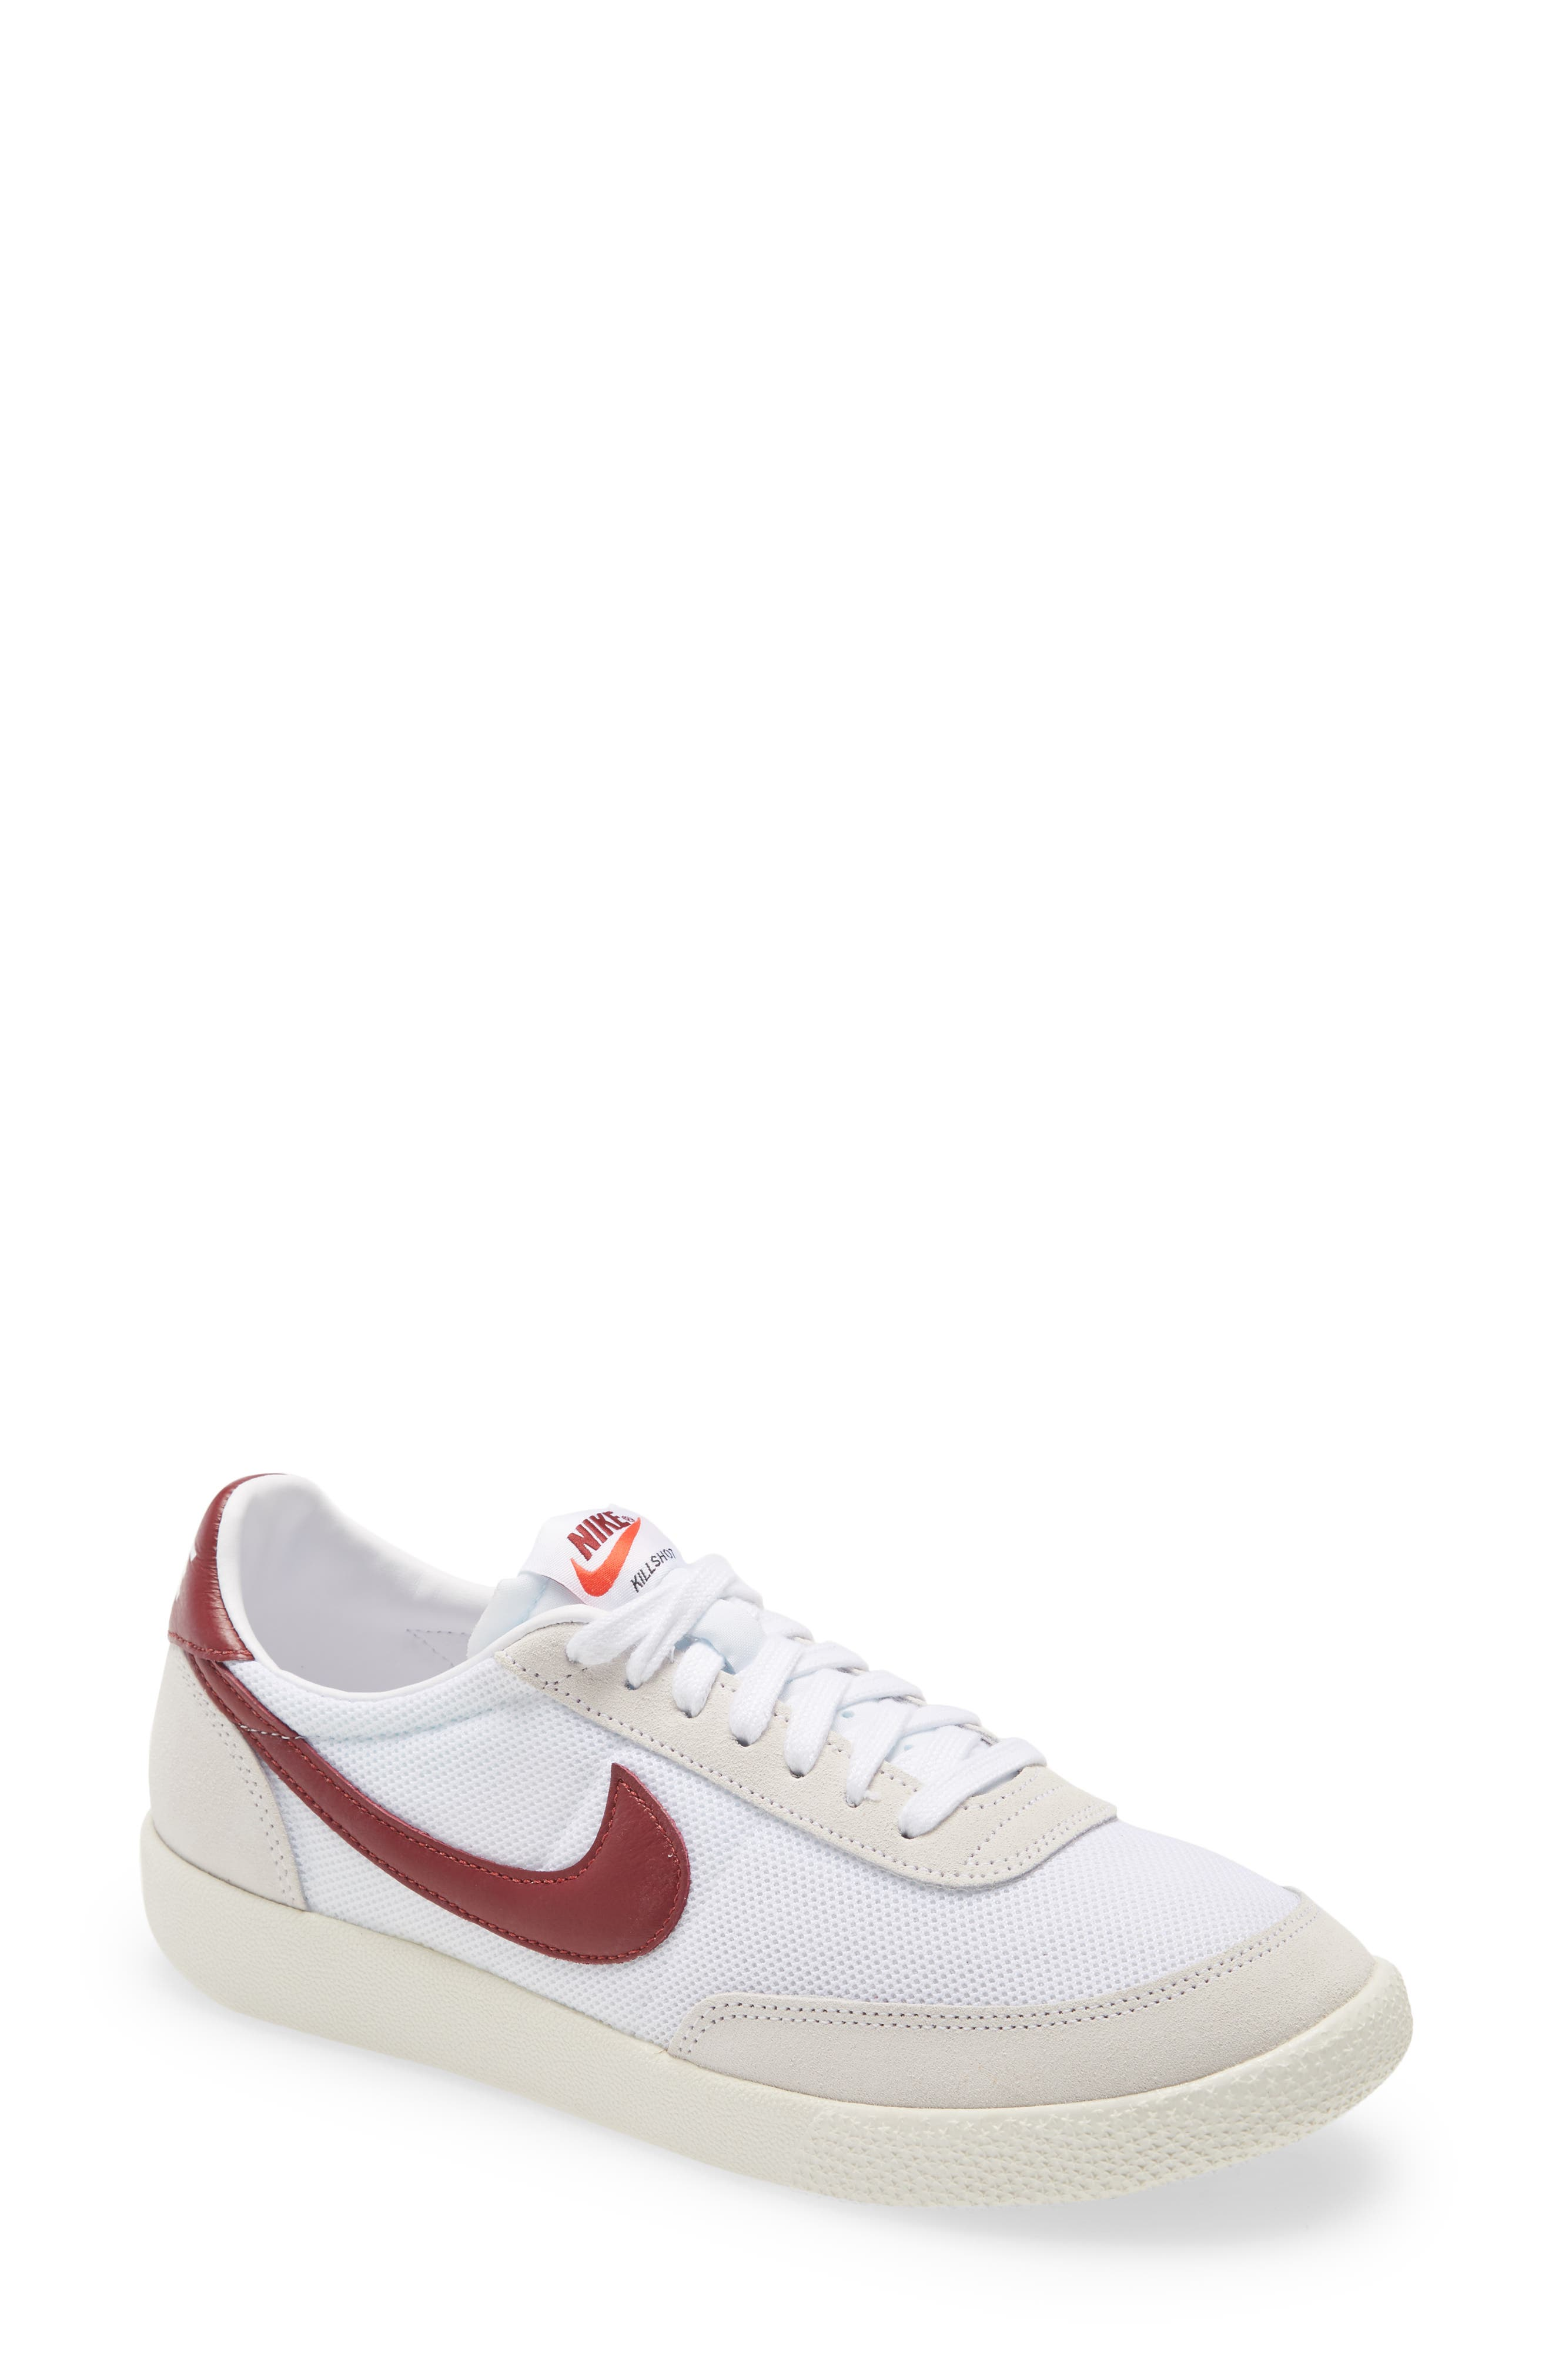 A fan favorite since its 1979 debut as a court shoe for racquetball and squash, this high-point sneaker still sports the low-top profile that\\\'s kept it so agile. Breathable mesh and original colorways pair with a modern star-studded bumper toe to update the shoe for contemporary kicks. Style Name: Nike Killshot Og Sneaker (Men). Style Number: 6064876. Available in stores.